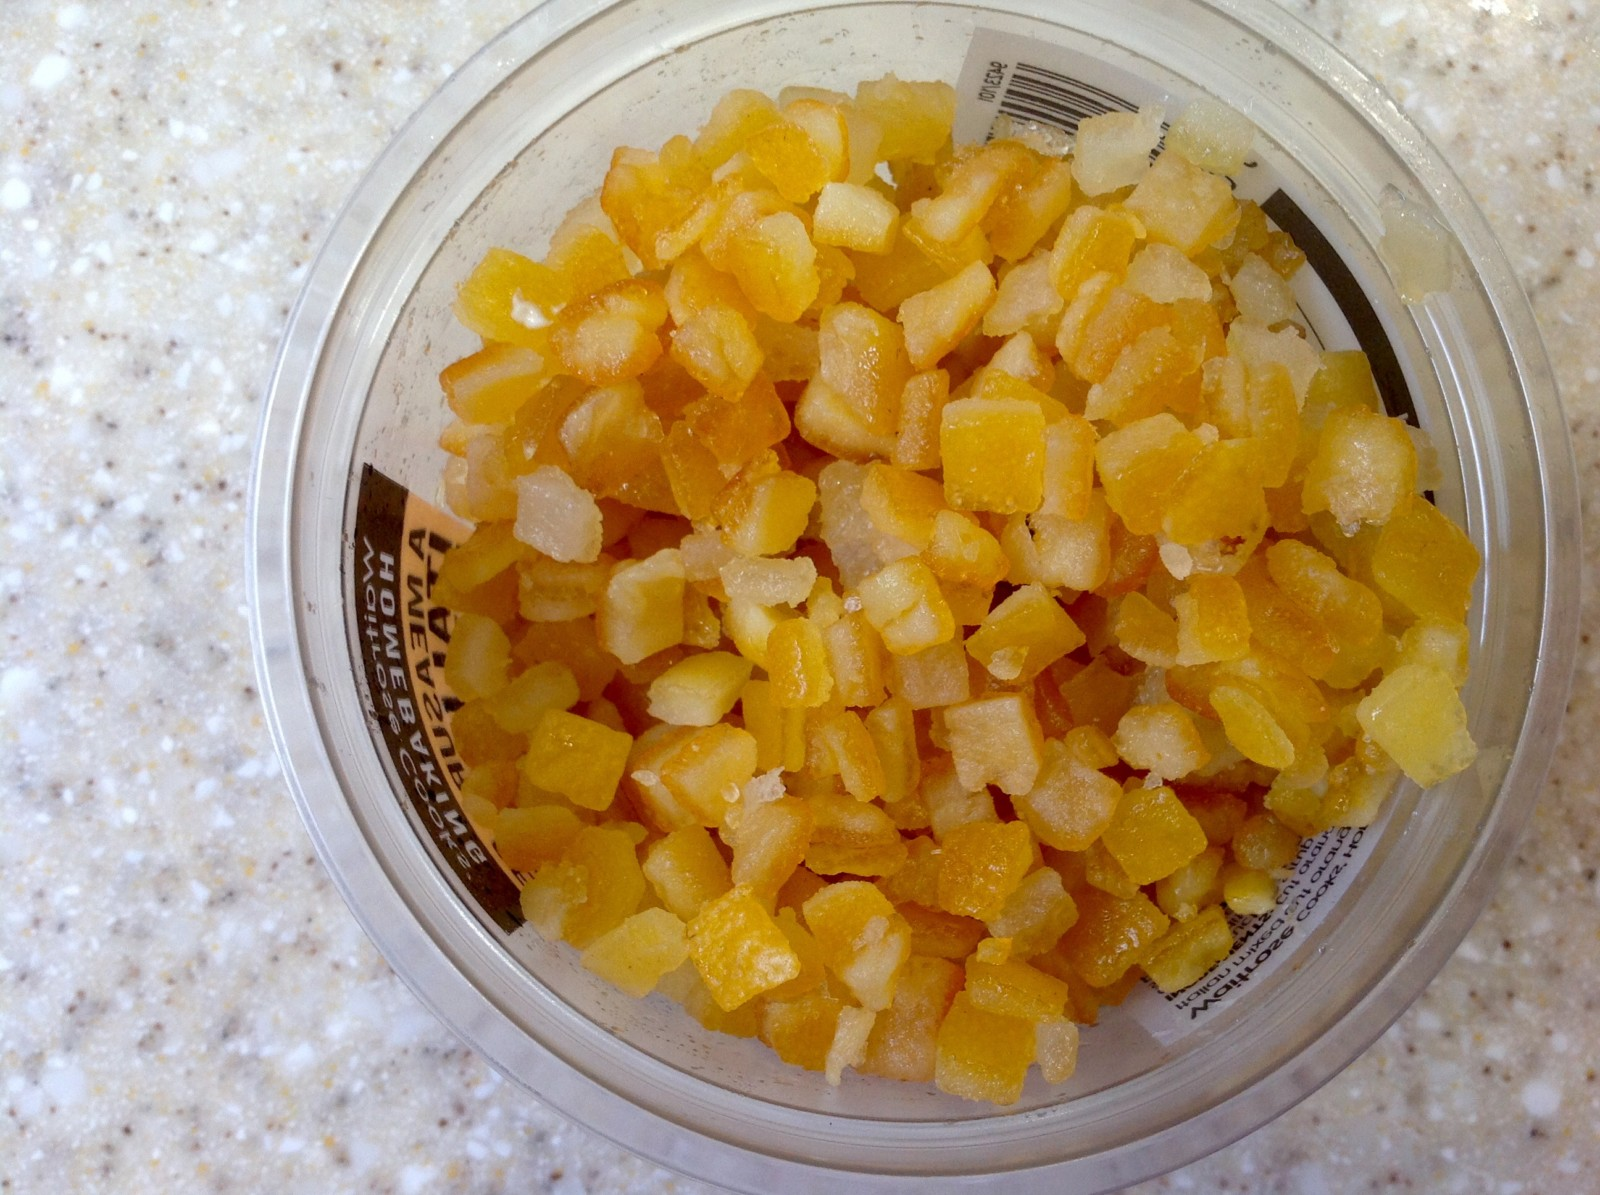 Candied peel